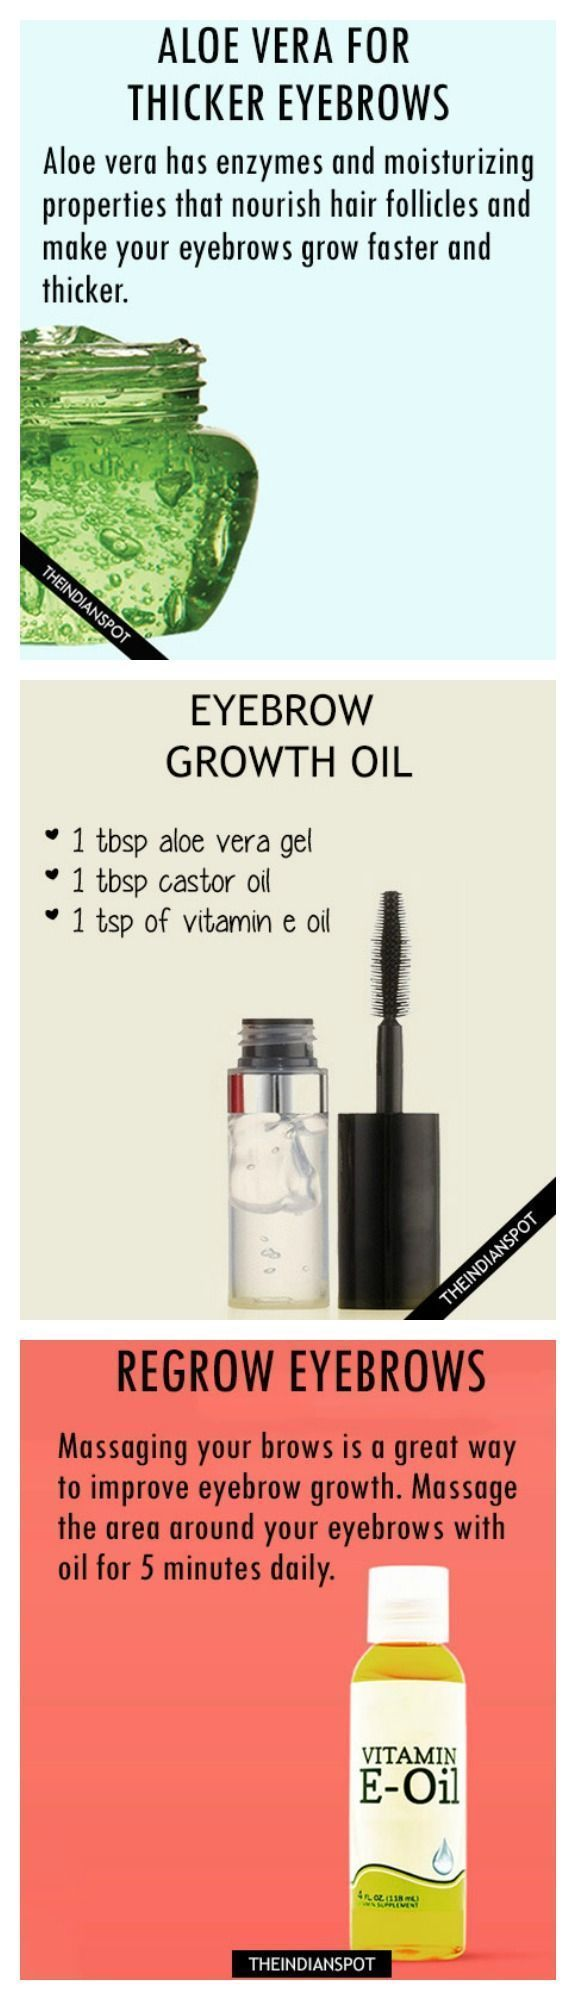 10 BEST HOME REMEDIES FOR FASTER EYEBROW  GROWTH FREE Delivery on all UK orders	 www.essentialoilproducts.co.uk